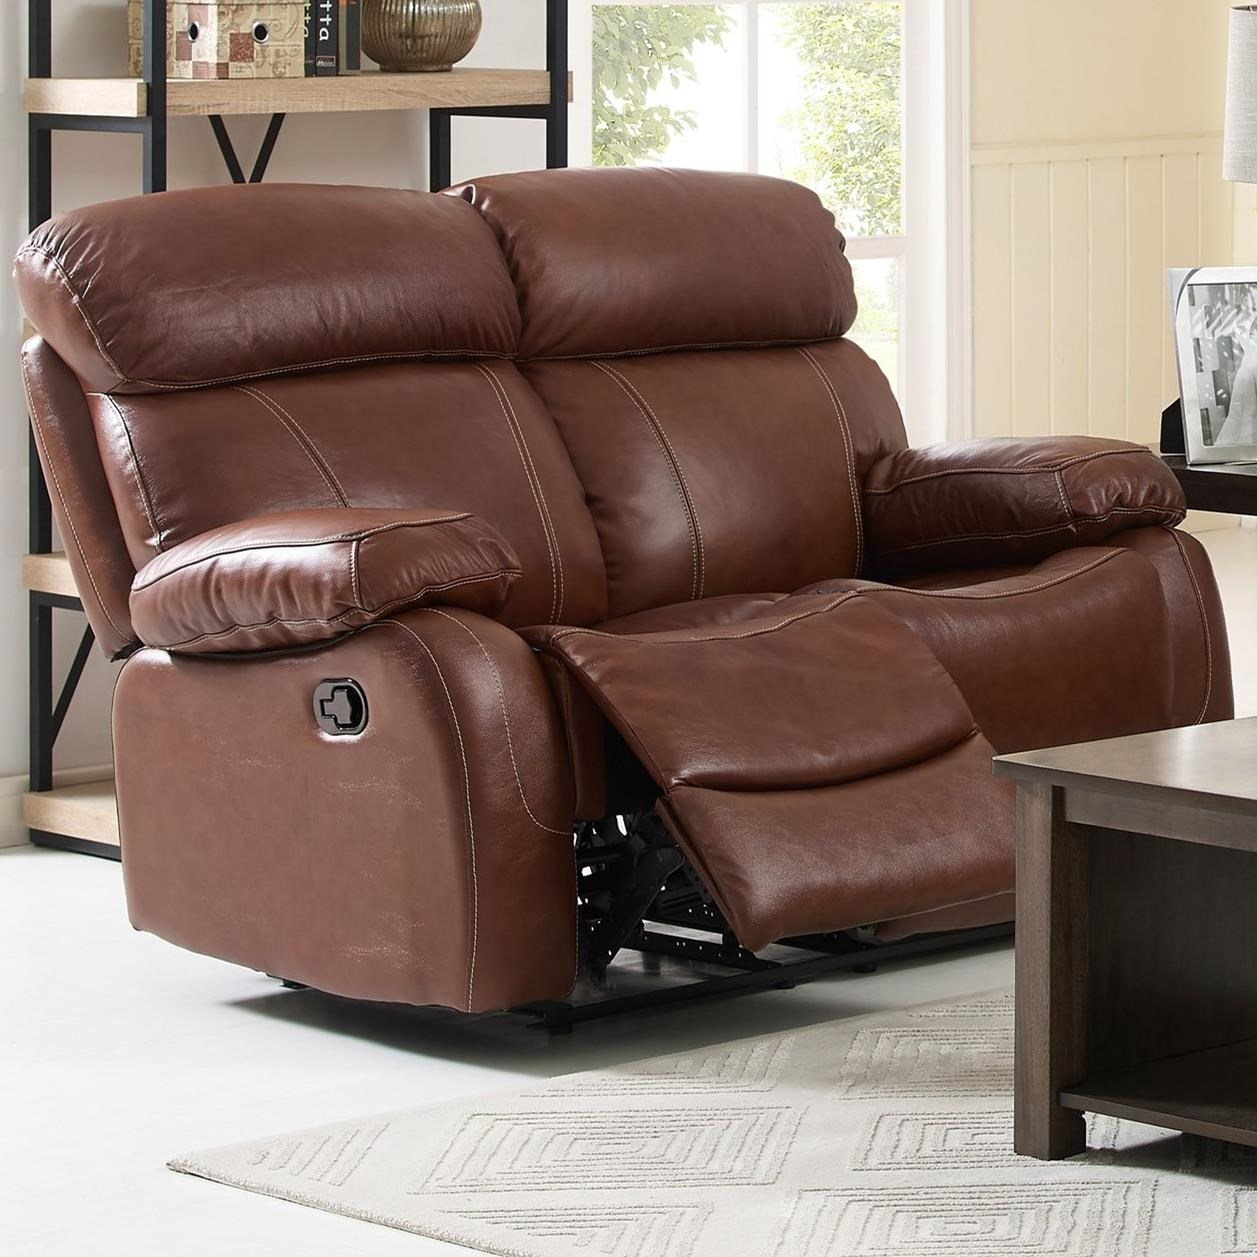 New Classic Dante Power Reclining Loveseat - Item Number: L2041-20P-LBN